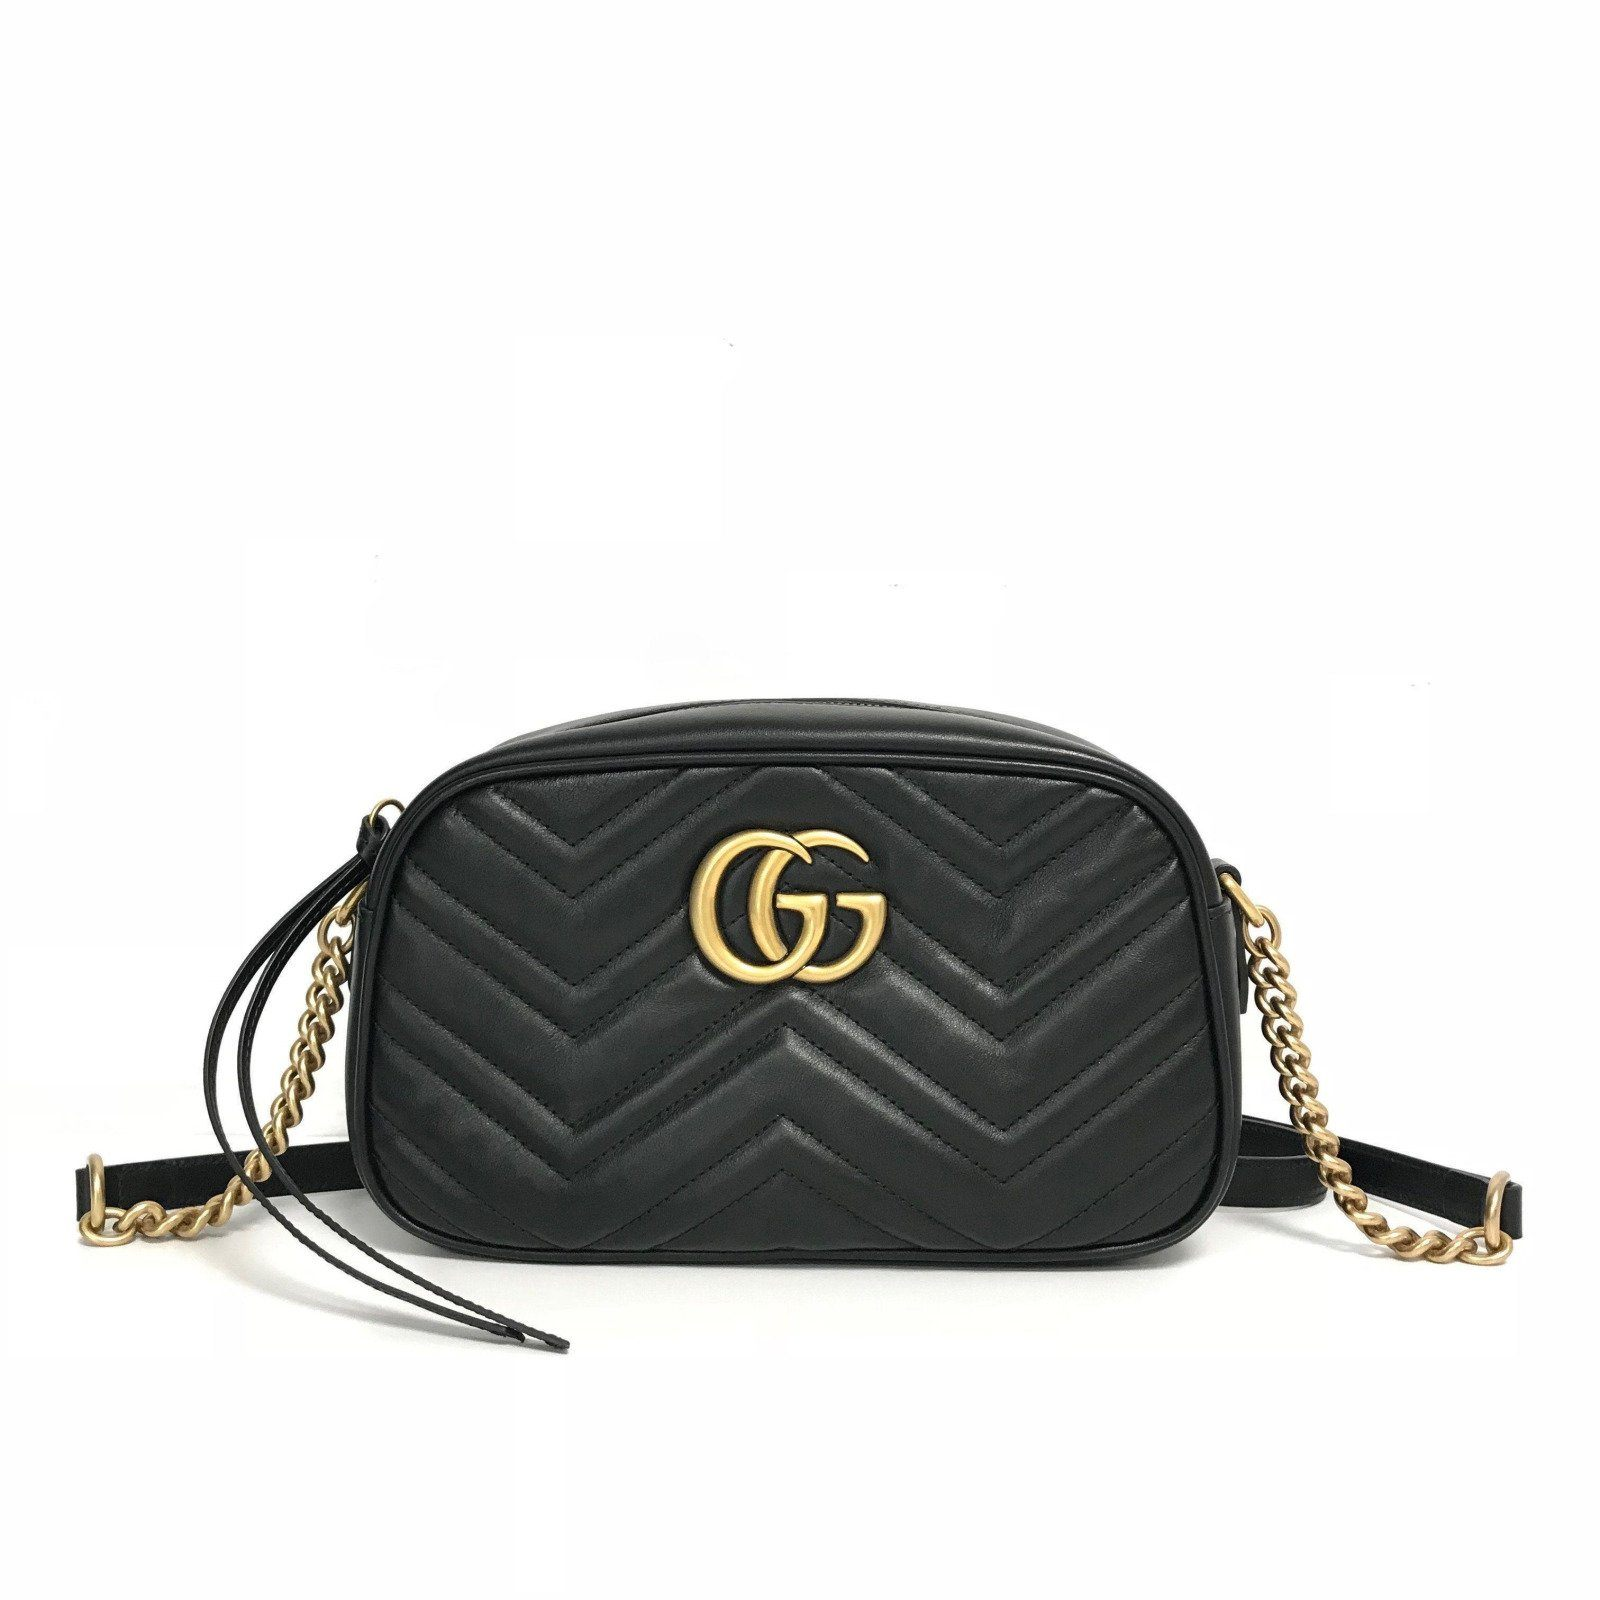 db128fe3dfadc Gucci Black GG Marmont Small Matelasse Shoulder Bag - Oliver Jewellery